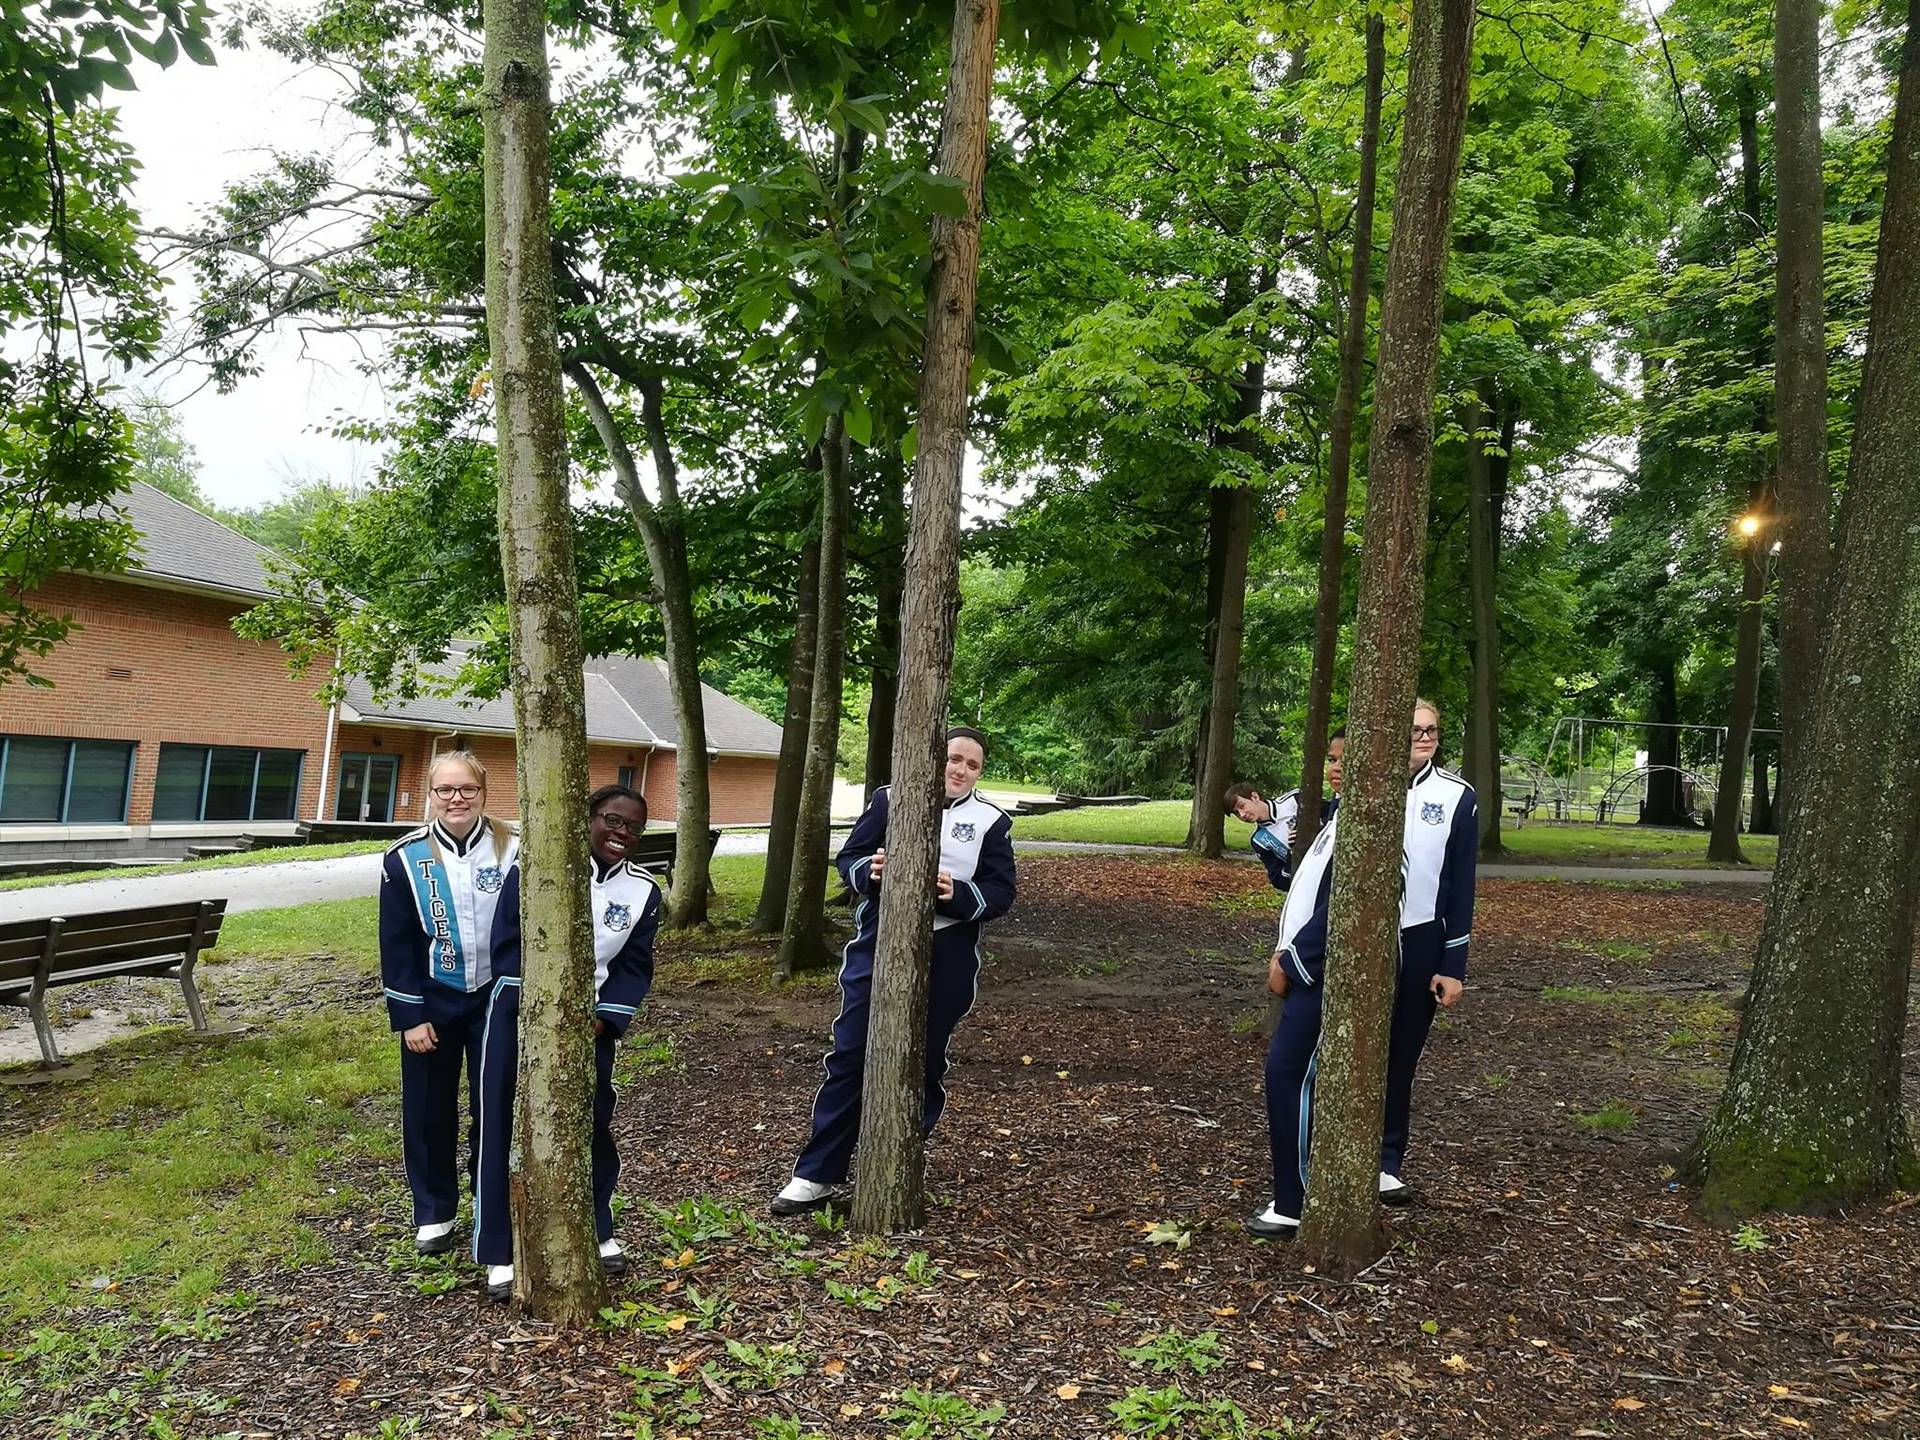 THS Marching Band Students hiding behind trees